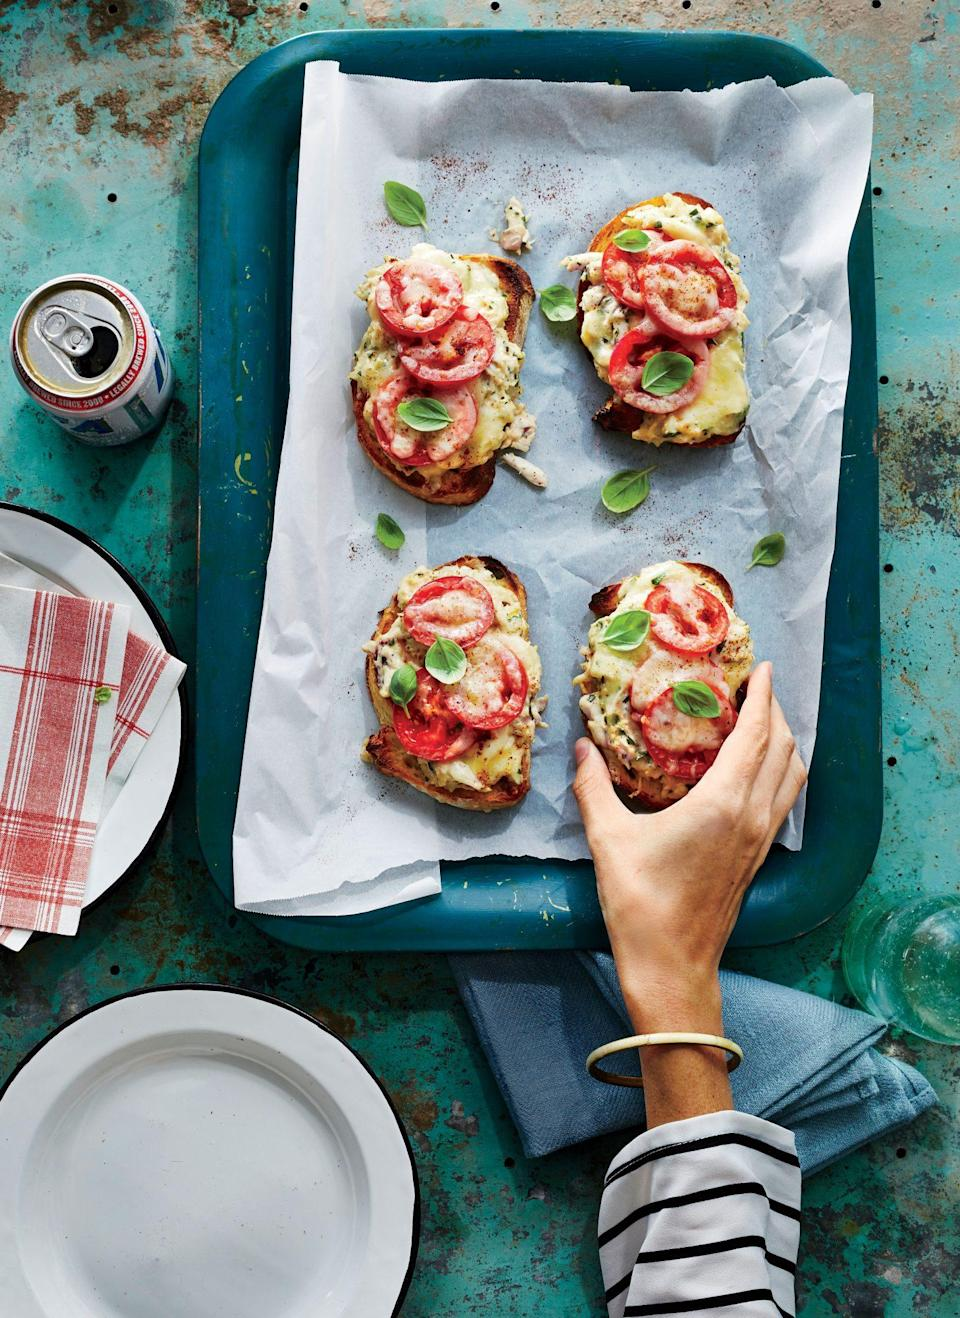 """<p><strong>Recipe:</strong> <a href=""""https://www.southernliving.com/recipes/deviled-crab-melts-recipe"""" rel=""""nofollow noopener"""" target=""""_blank"""" data-ylk=""""slk:Deviled Crab Melts"""" class=""""link rapid-noclick-resp"""">Deviled Crab Melts</a></p> <p>Who doesn't love an open-faced sandwich at brunch? Fresh tomatoes and gooey cheese make this the perfect summer bite.</p>"""